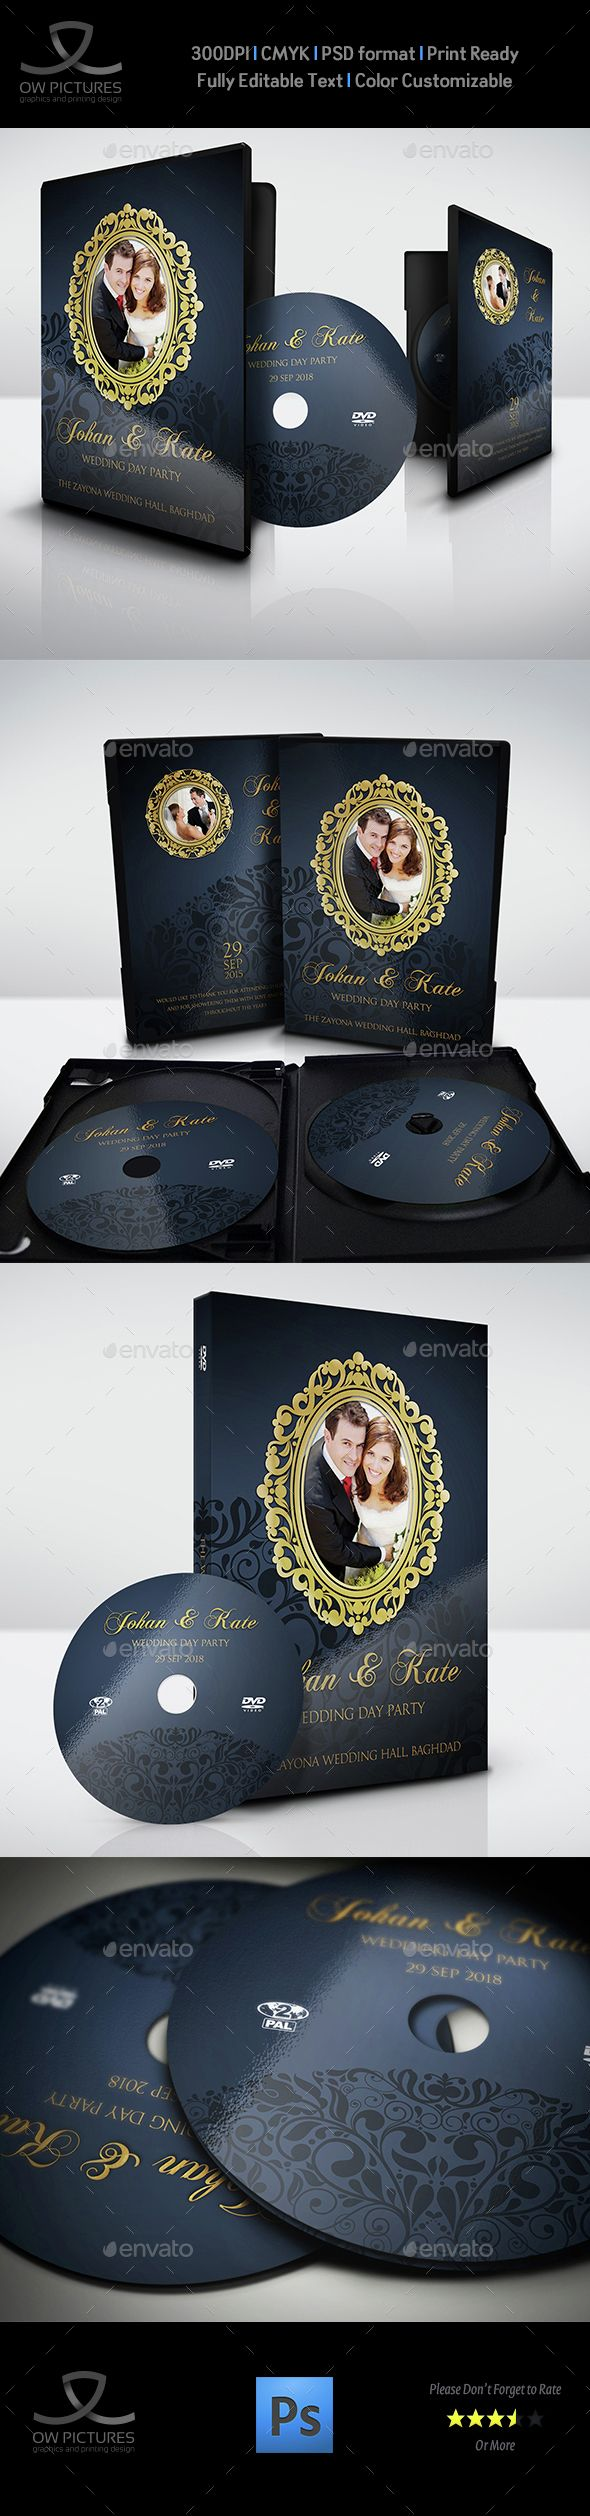 Wedding DVD Cover and DVD Label Template PSD. Download here: http://graphicriver.net/item/wedding-dvd-cover-and-dvd-label-template-vol7/15178517?ref=ksioks